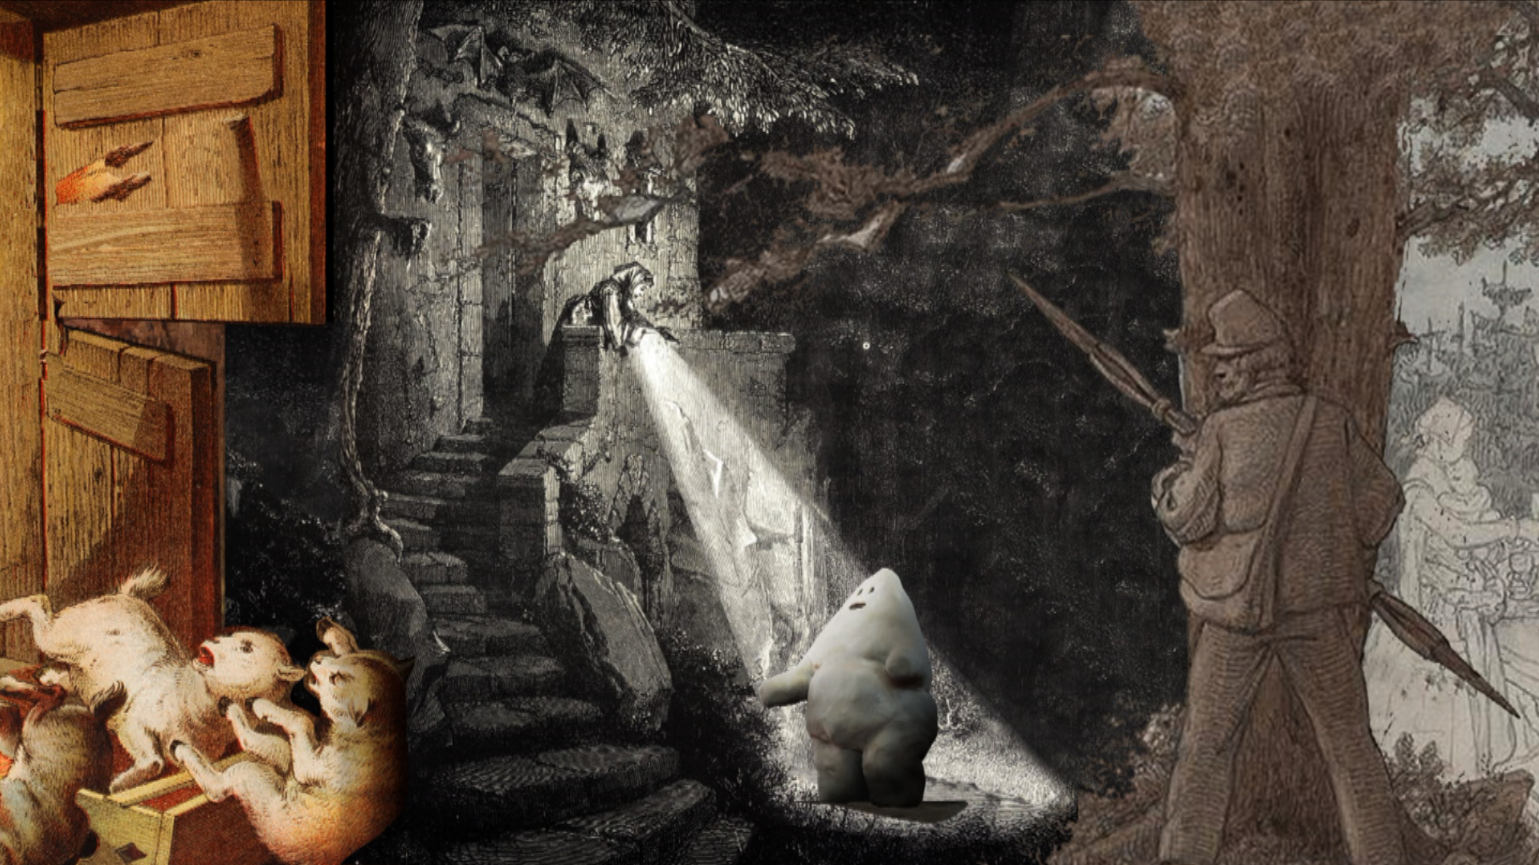 Still from The Golem, rumbled by a character from an old fairy tale